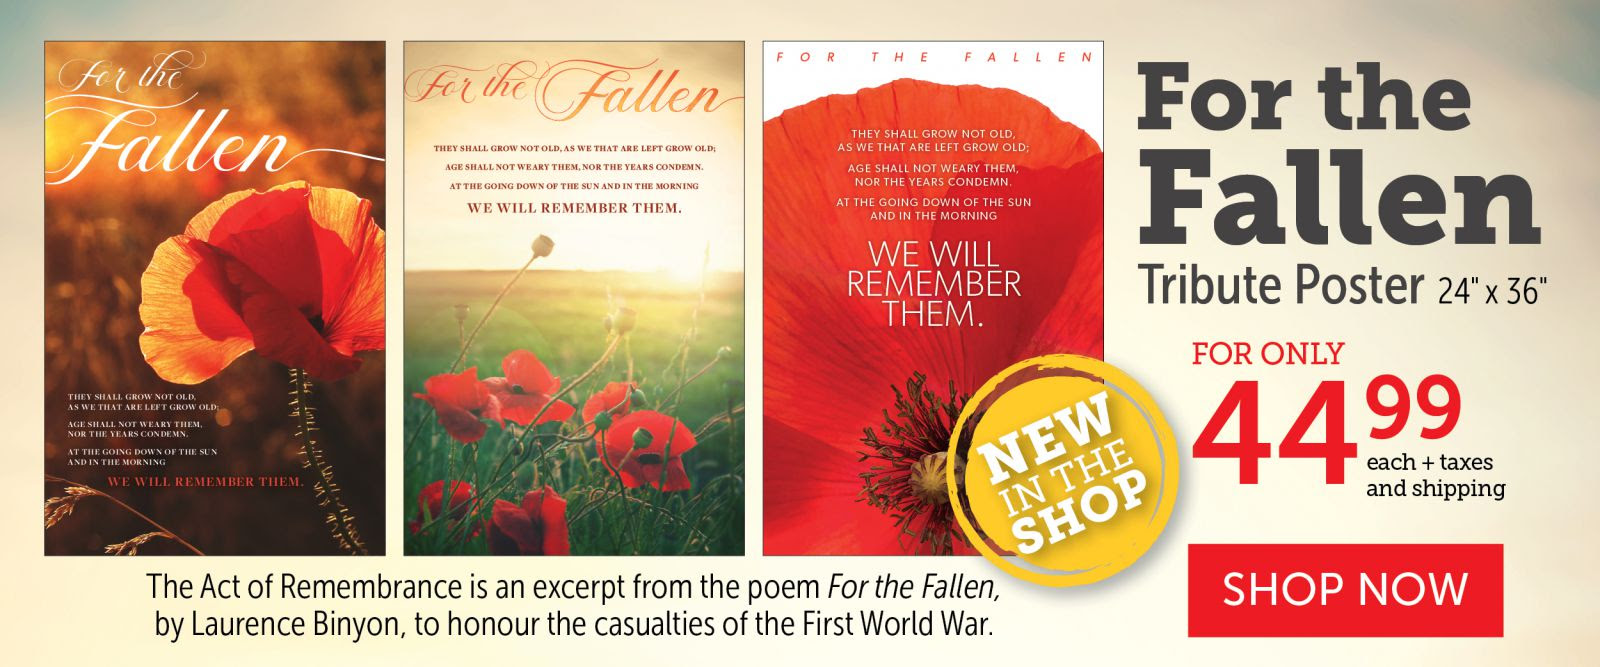 For the Fallen | $44.99